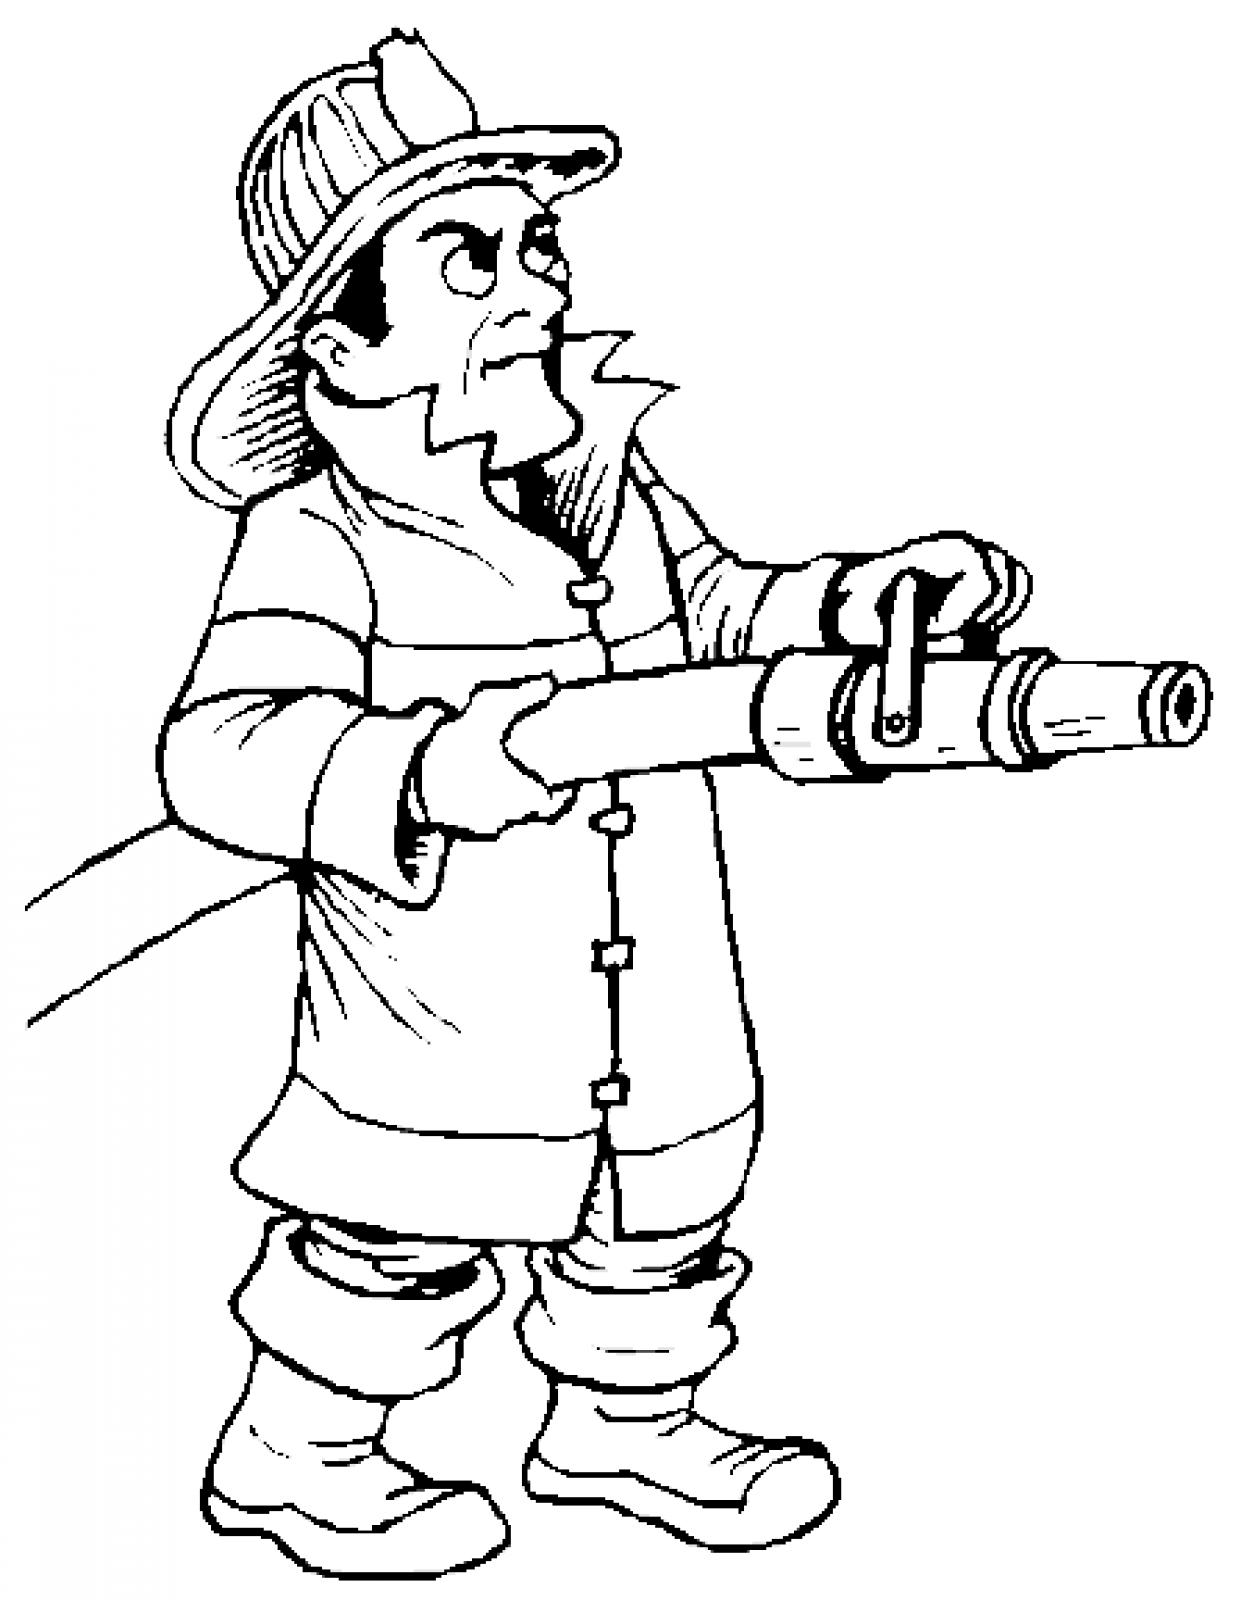 printable firefighter coloring pages coloring me Firefighter Coloring Pages for Preschool  Coloring Firefighter